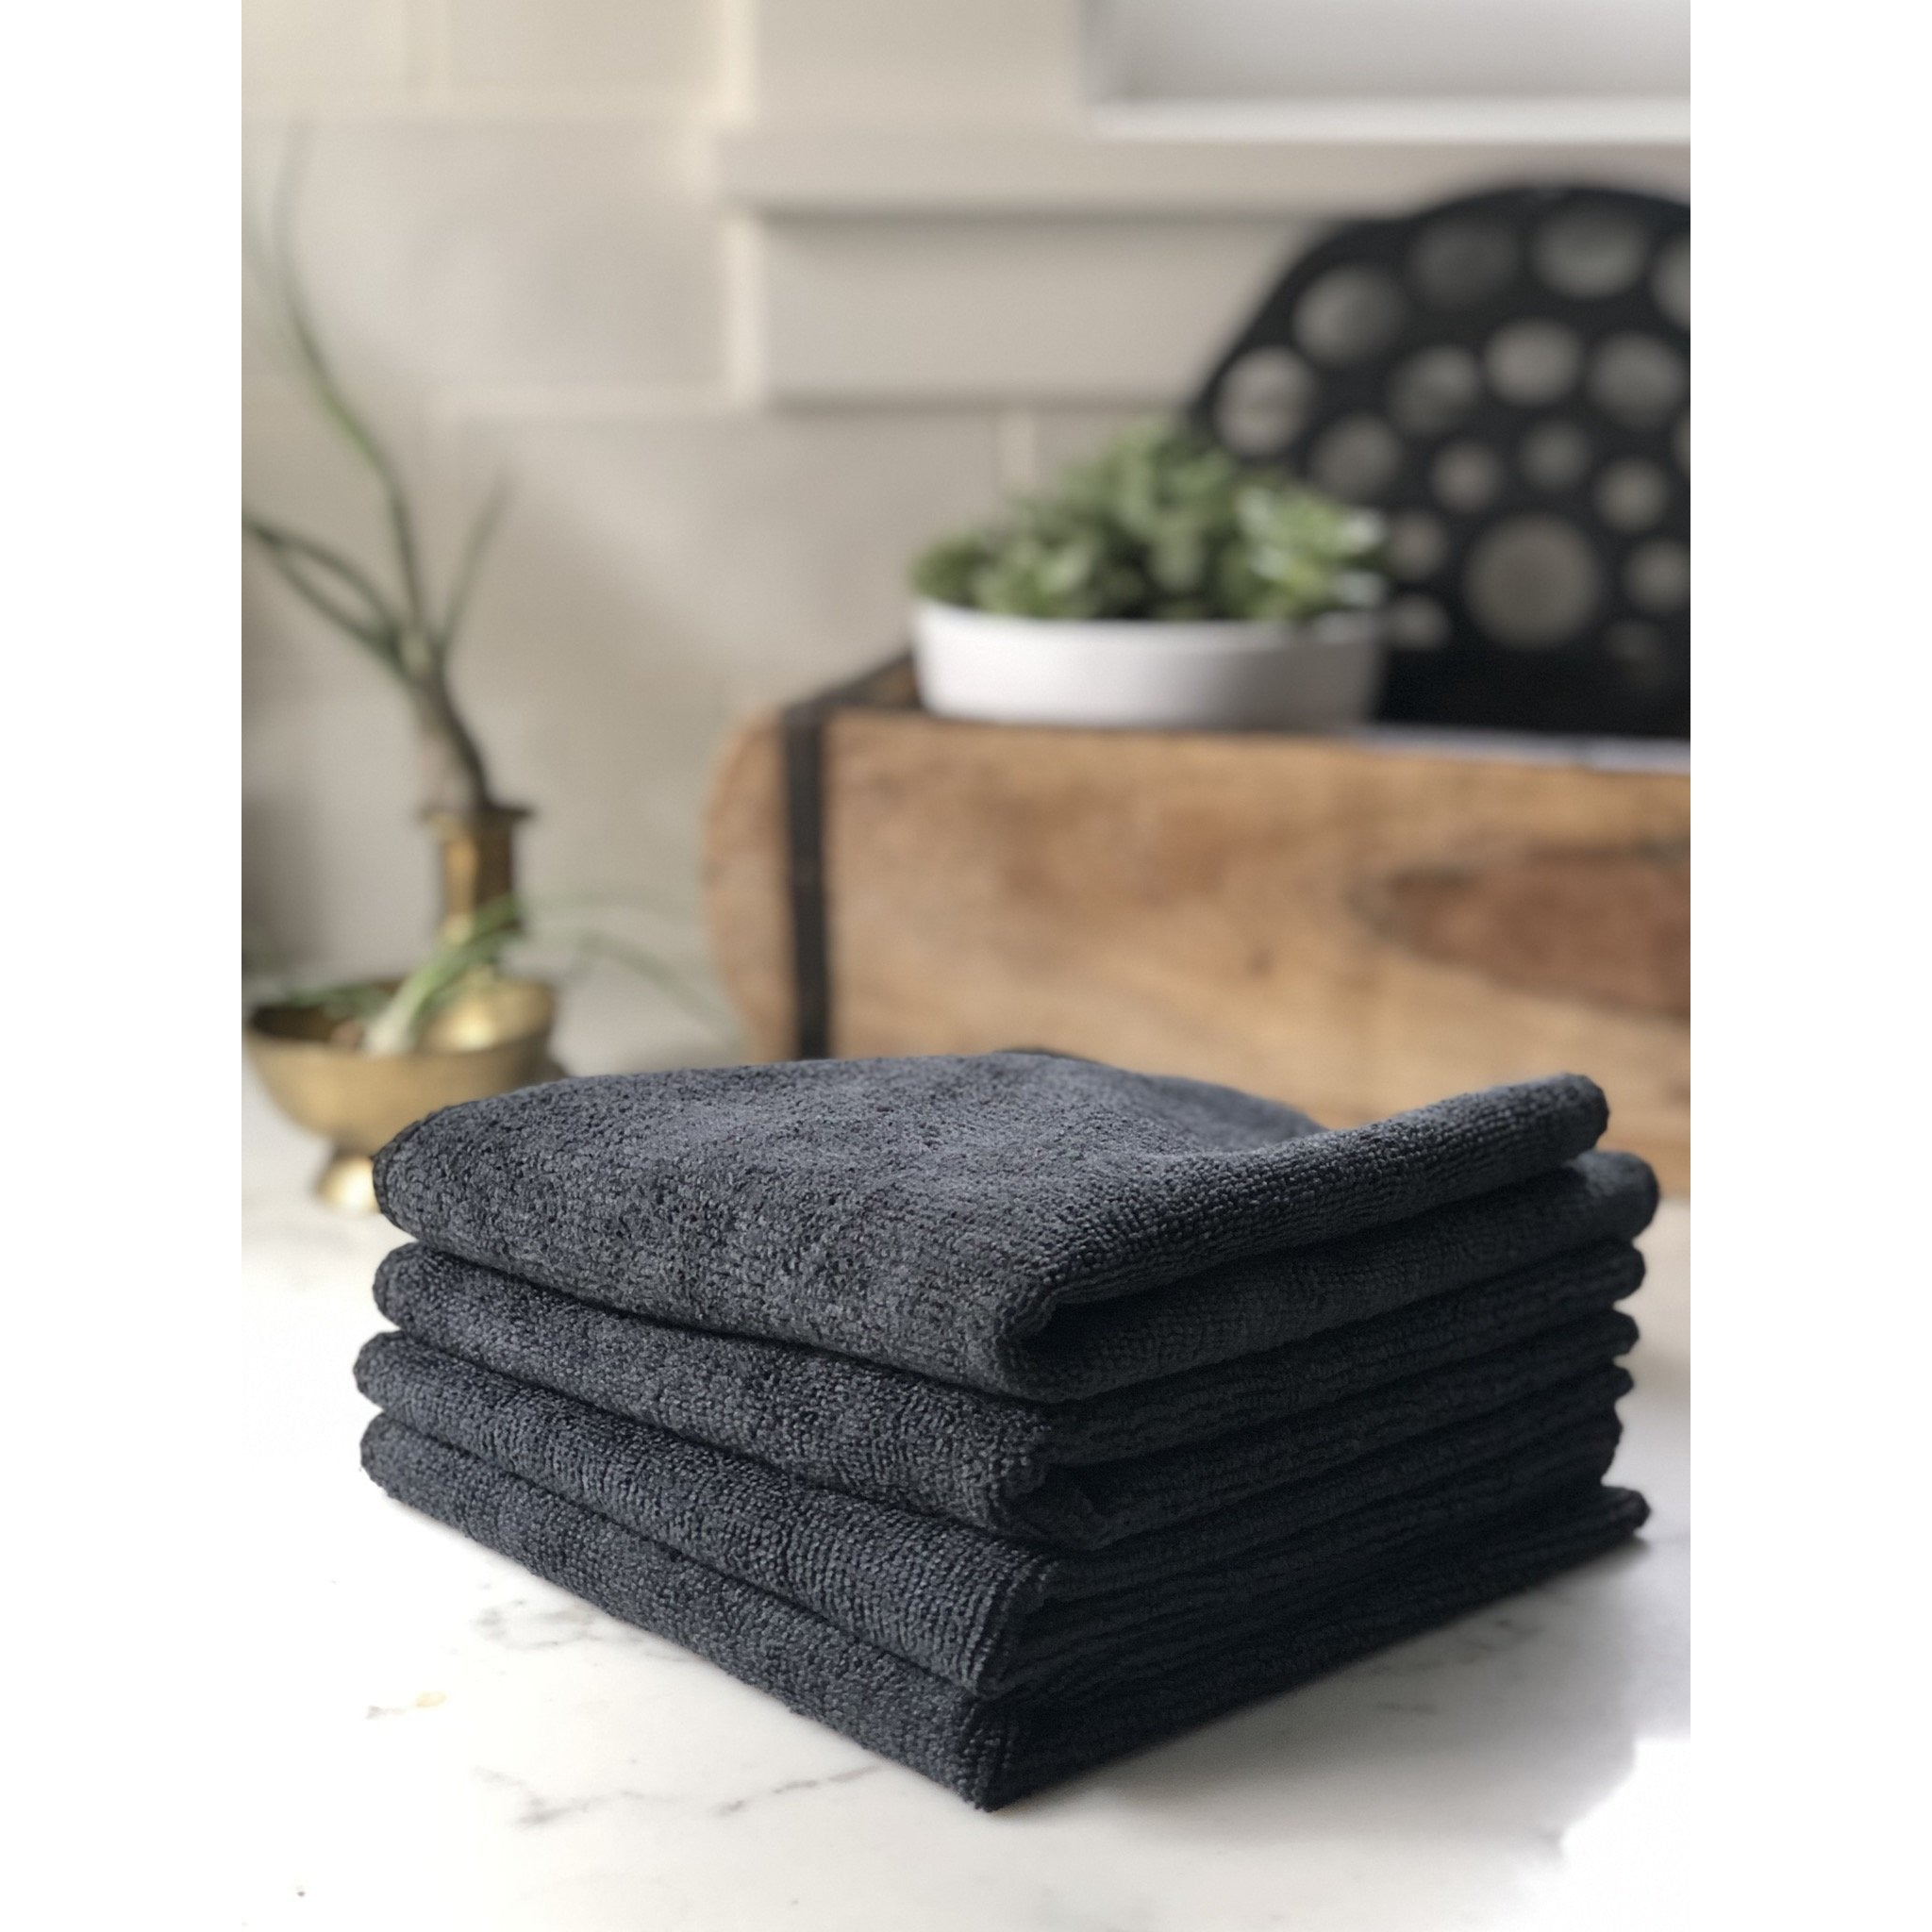 Microfiber Cloths - Professional Grade - Homage Essentials & Co